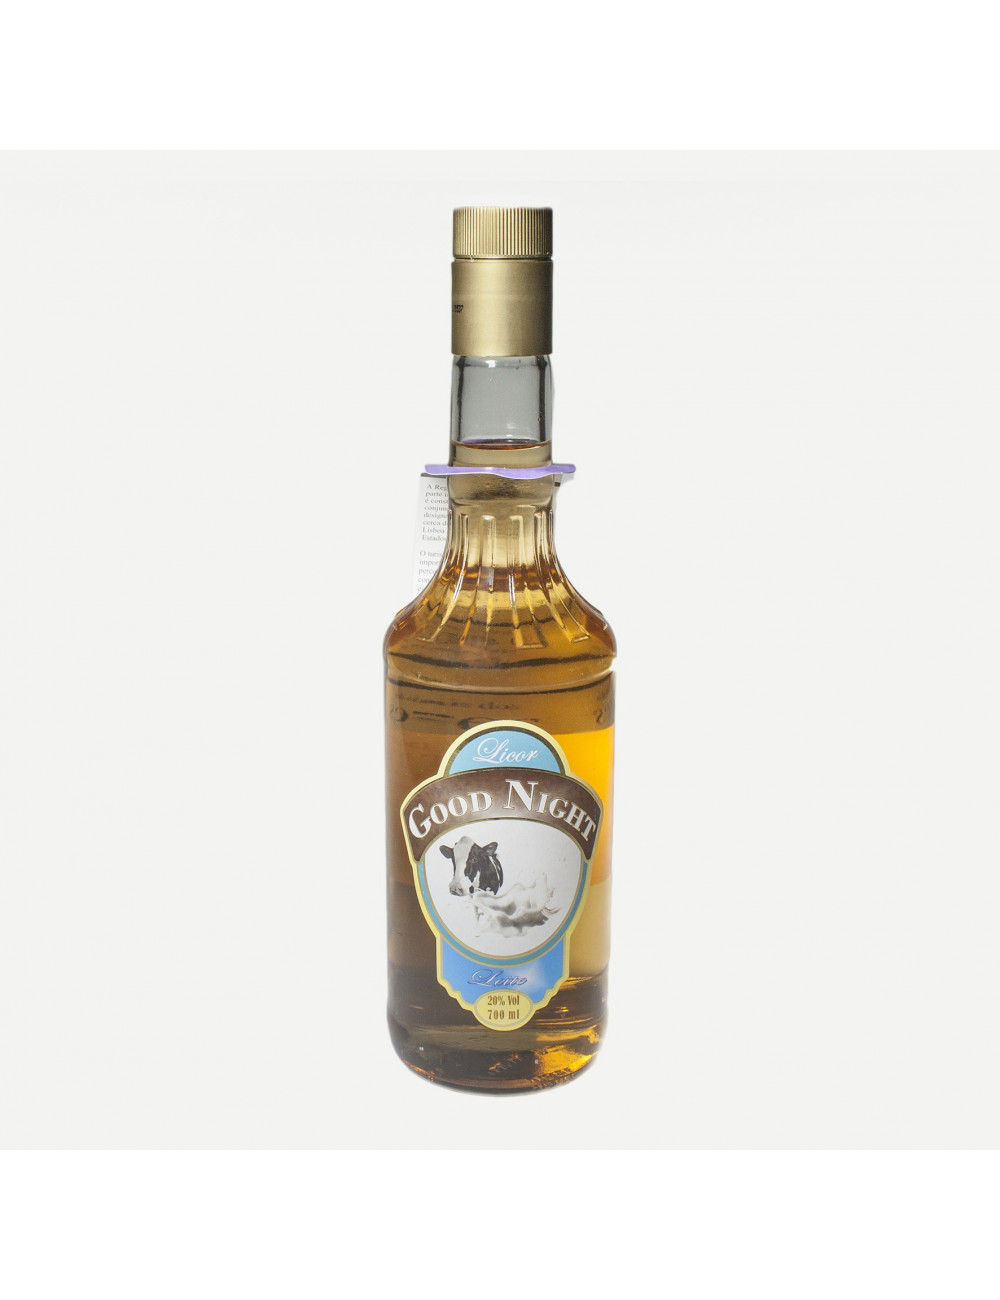 Licor de Leite Good Night